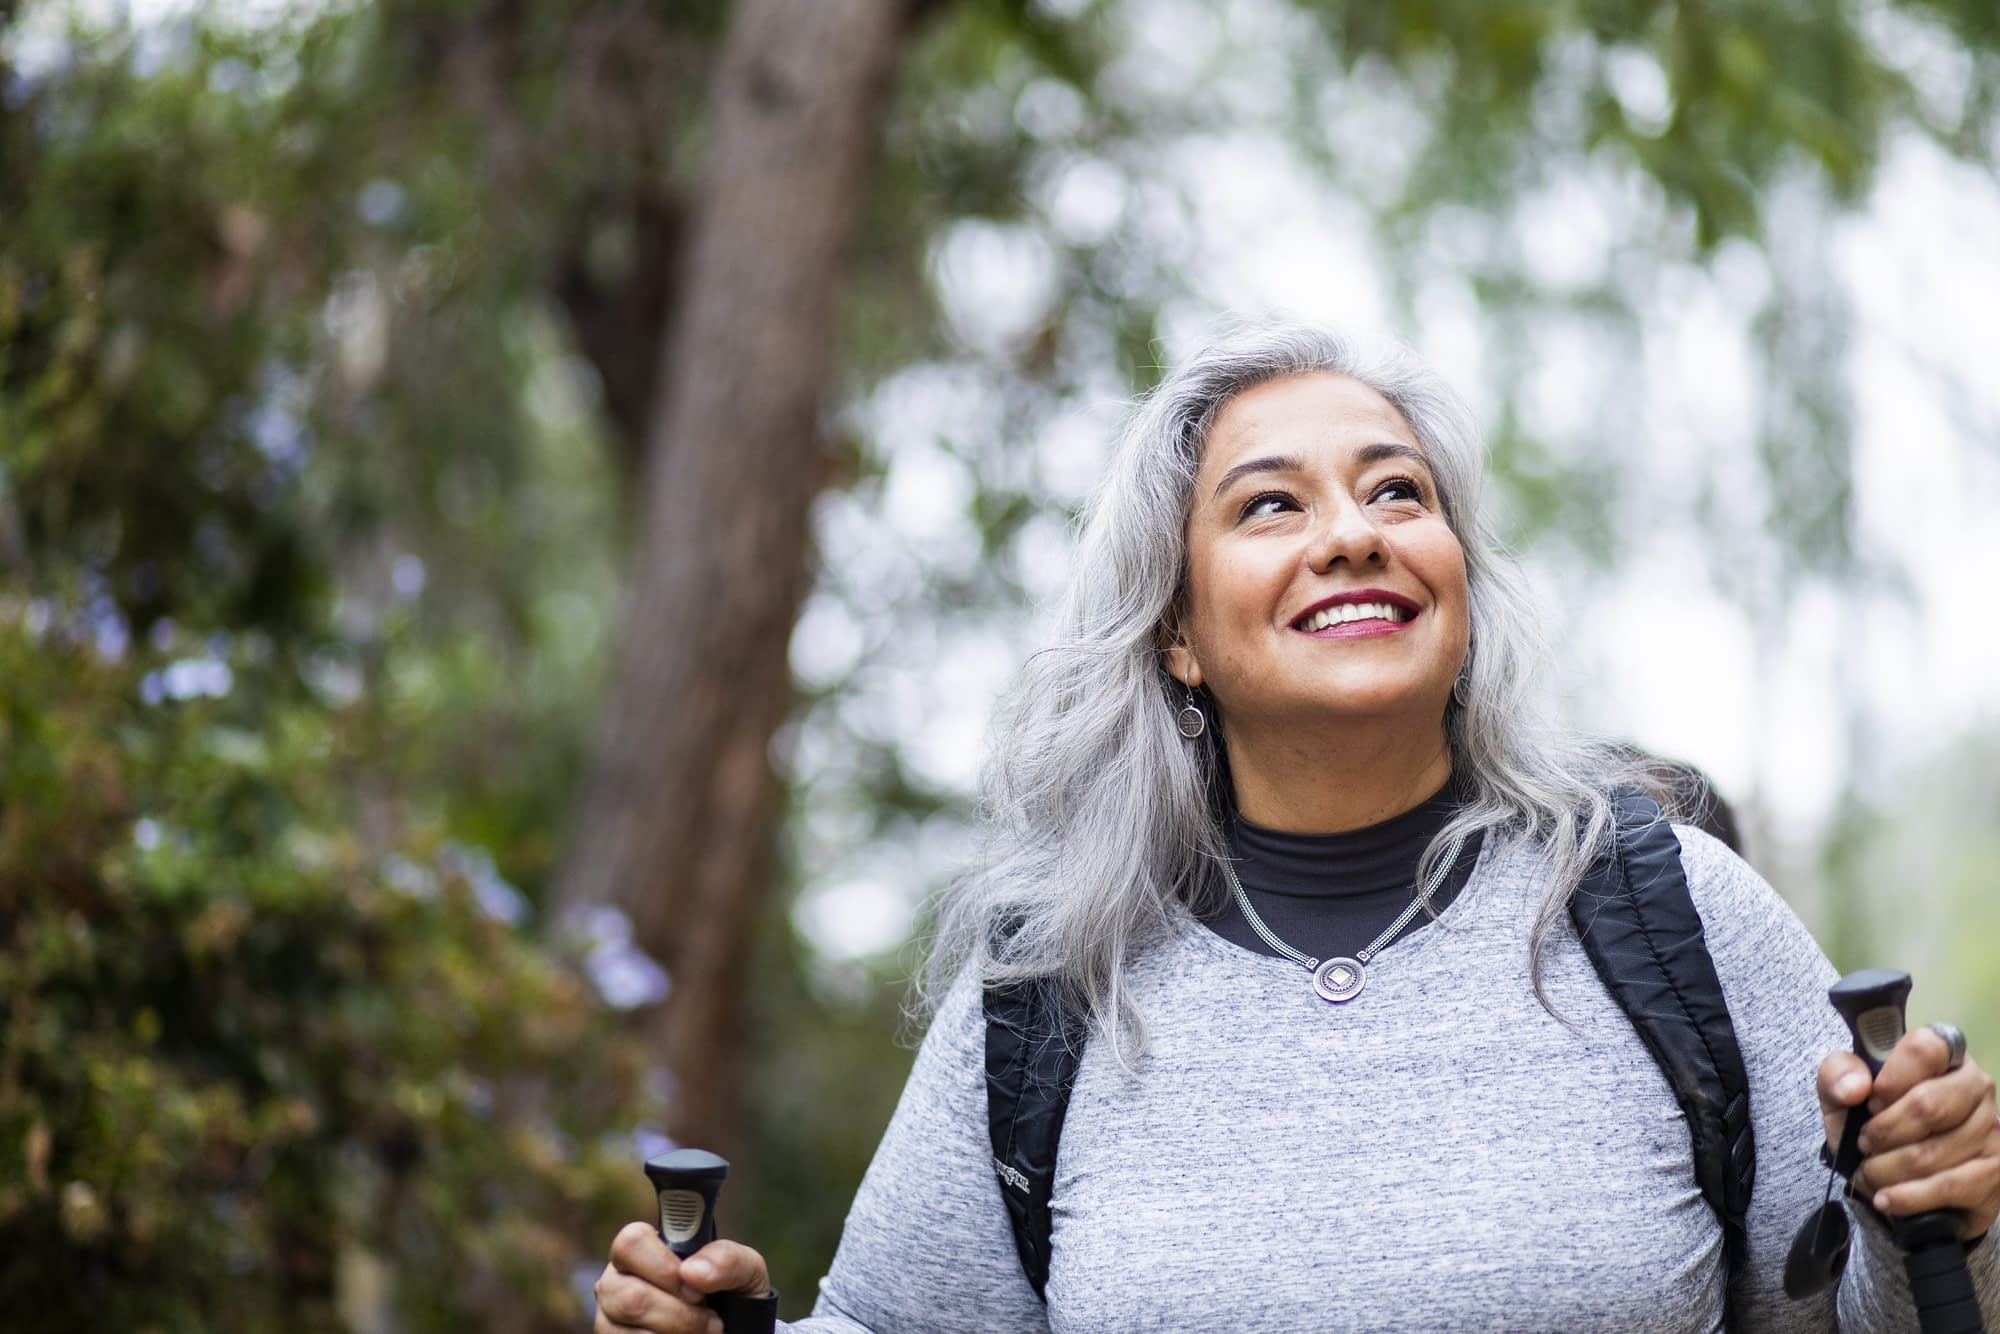 Woman out for walk in nature using walking sticks